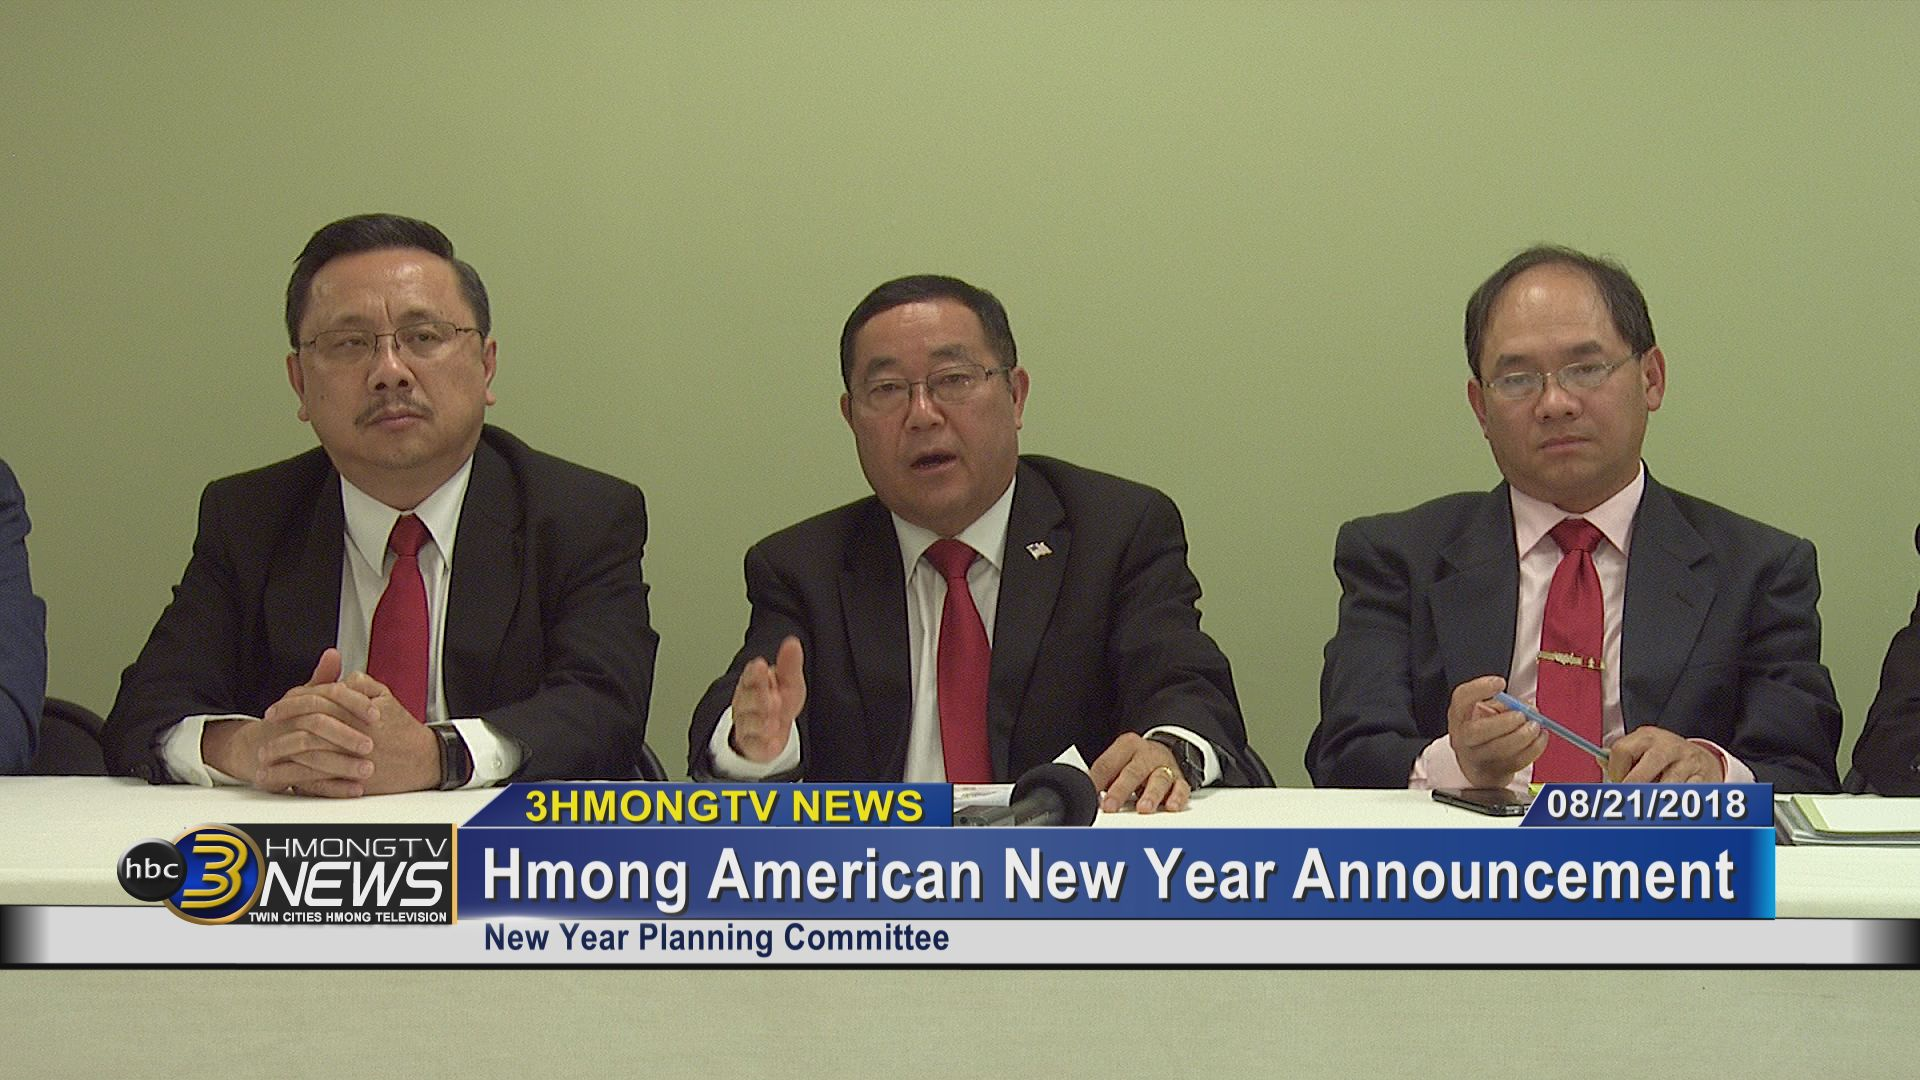 PUBLIC ANNOUNCEMENT FROM HMONG AMERICAN NEW YEAR COMMITTEE.